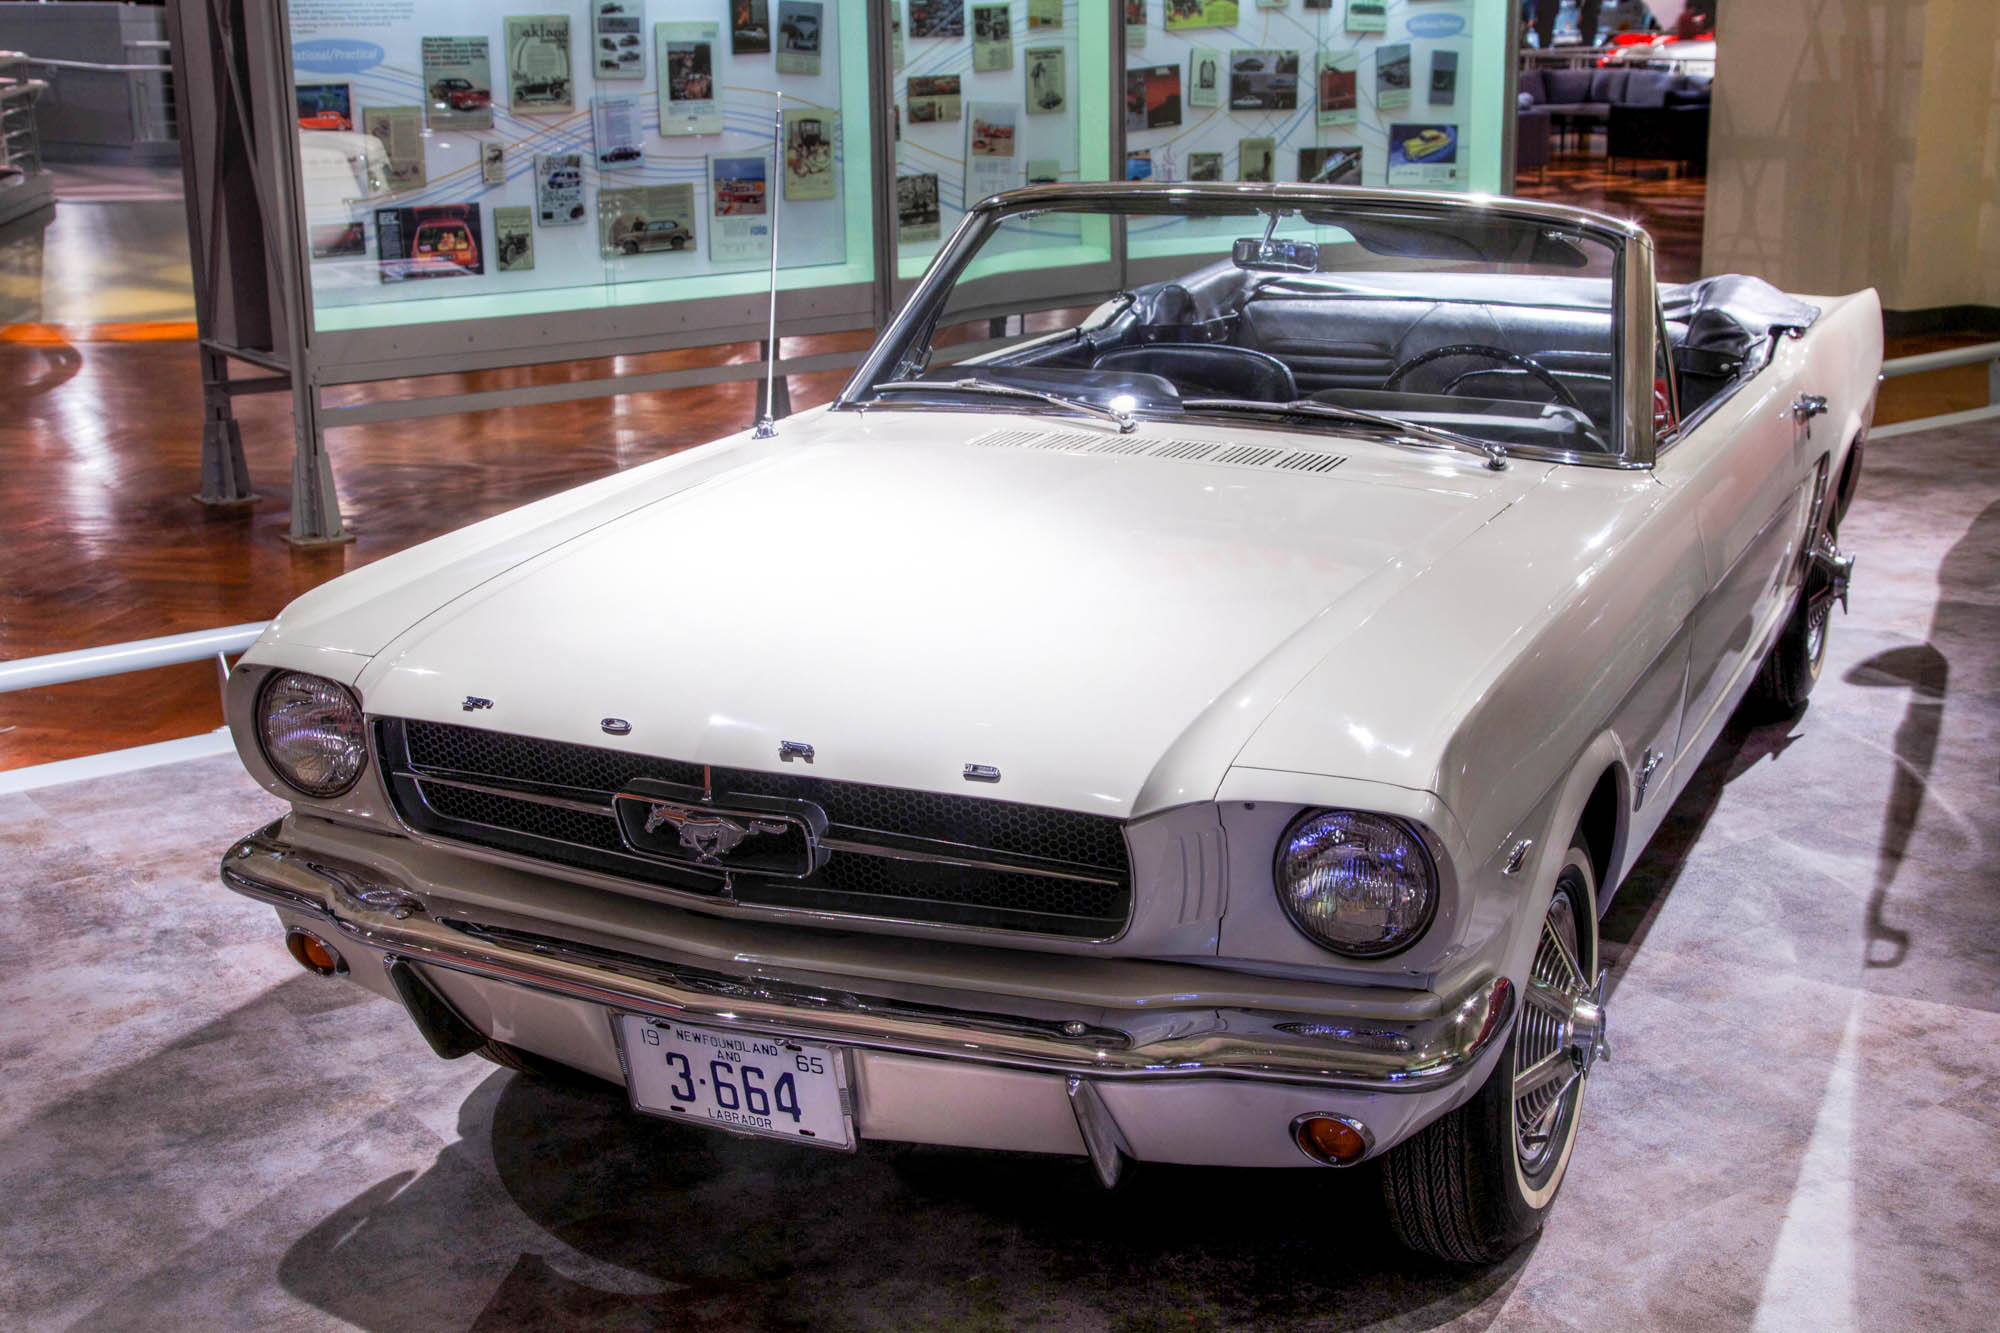 Ford Mustang Wikipedia 1964 Brochure Convertible Serial 1 Sold To Stanley Tucker Who Was Given The One Millionth In Exchange For His Historic Car